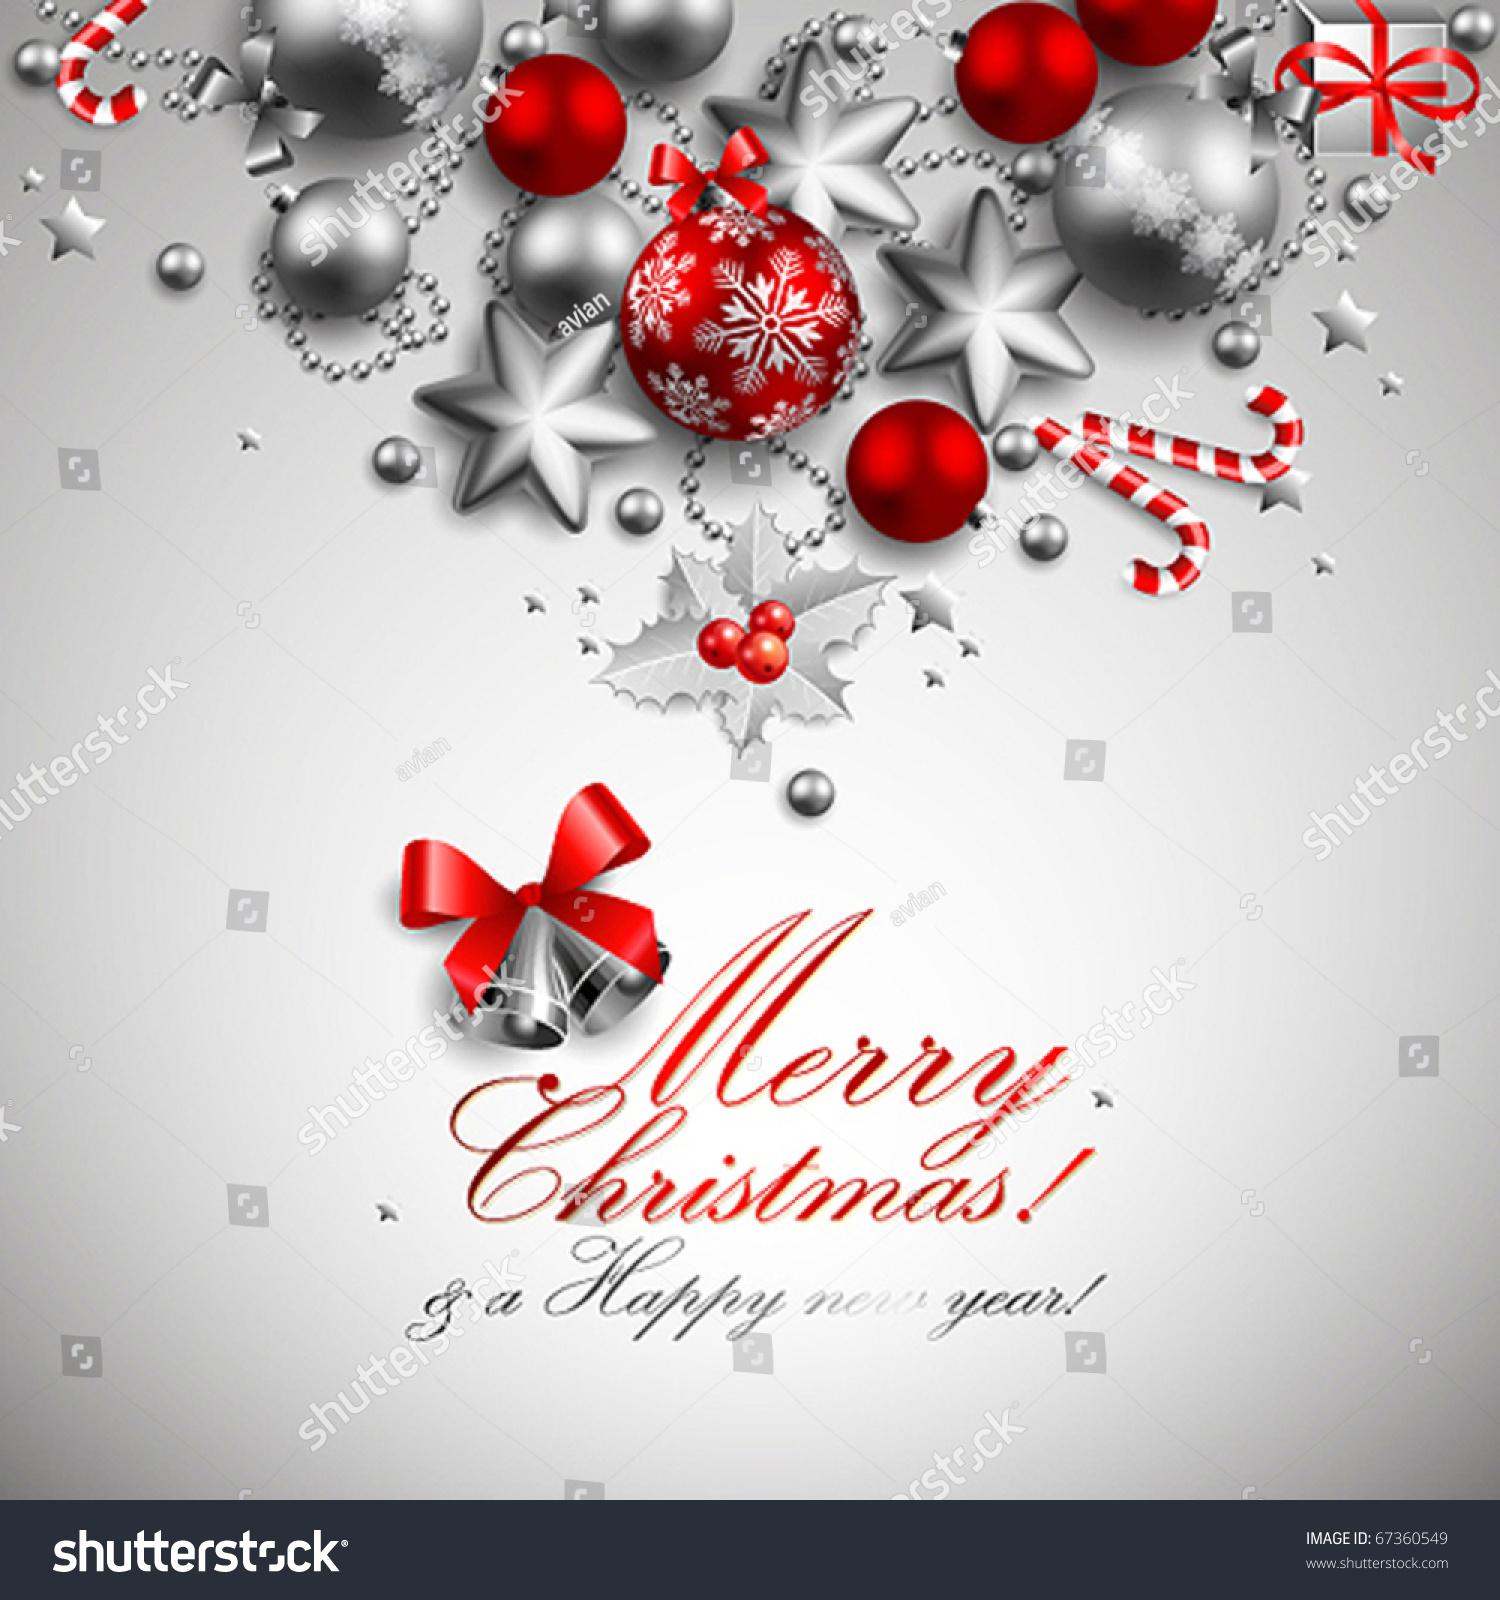 Beautiful Red Silver Christmas Background Stock Vector 67360549 ...